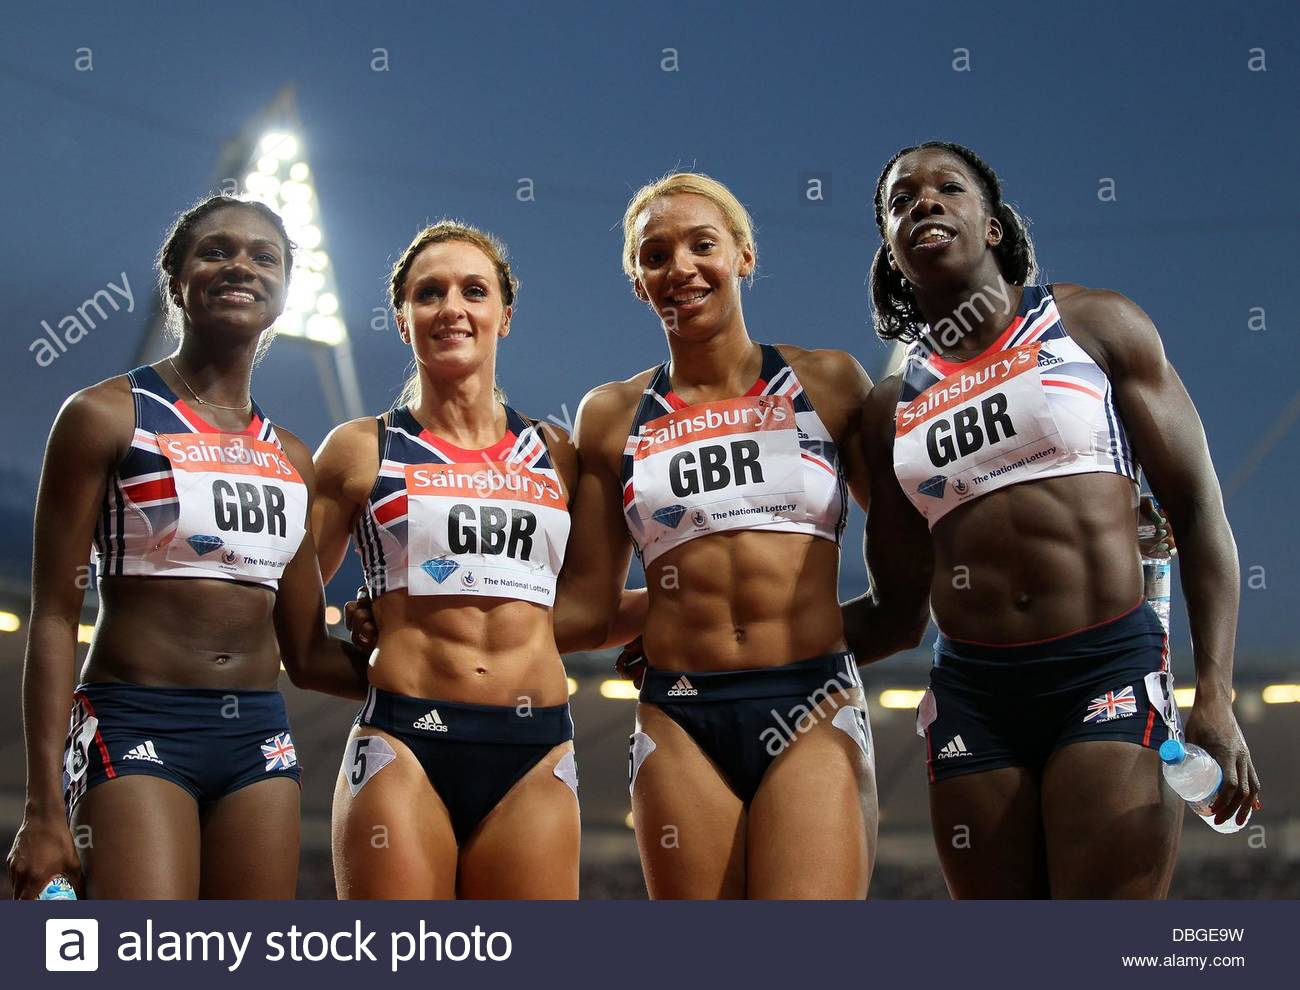 Annabelle lewis stock photos annabelle lewis stock images alamy london uk 26th july 2013 great britains womens 4 x 100m winners izmirmasajfo